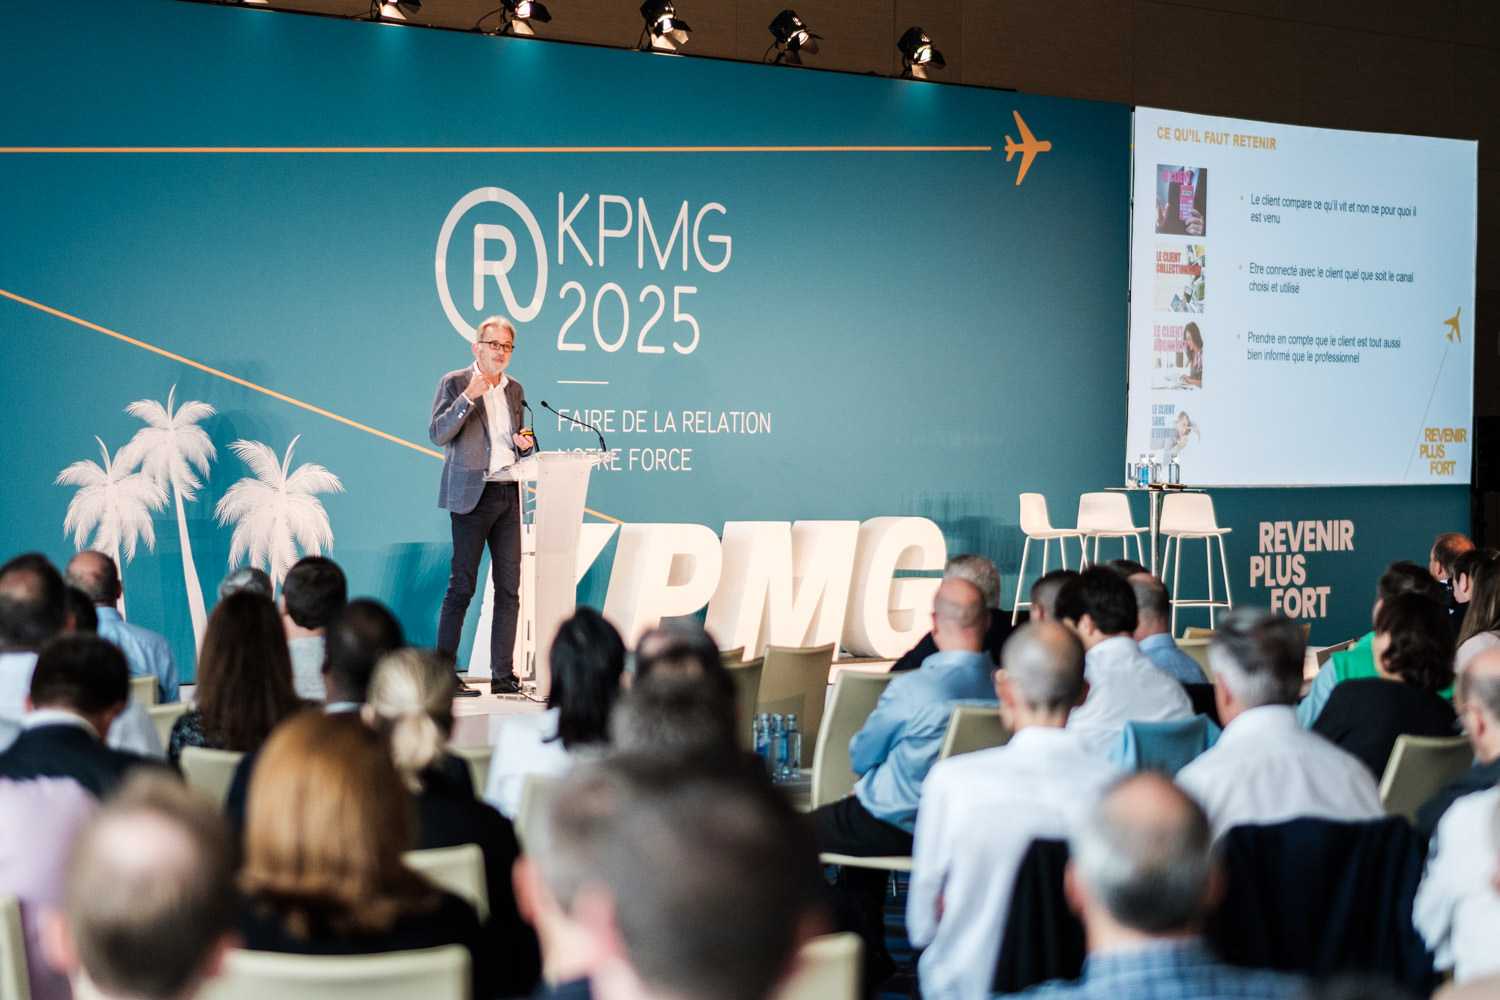 A photography of a man on stage speaking at the KPMG conference event at the W Hotel, in Barcelona, Spain.